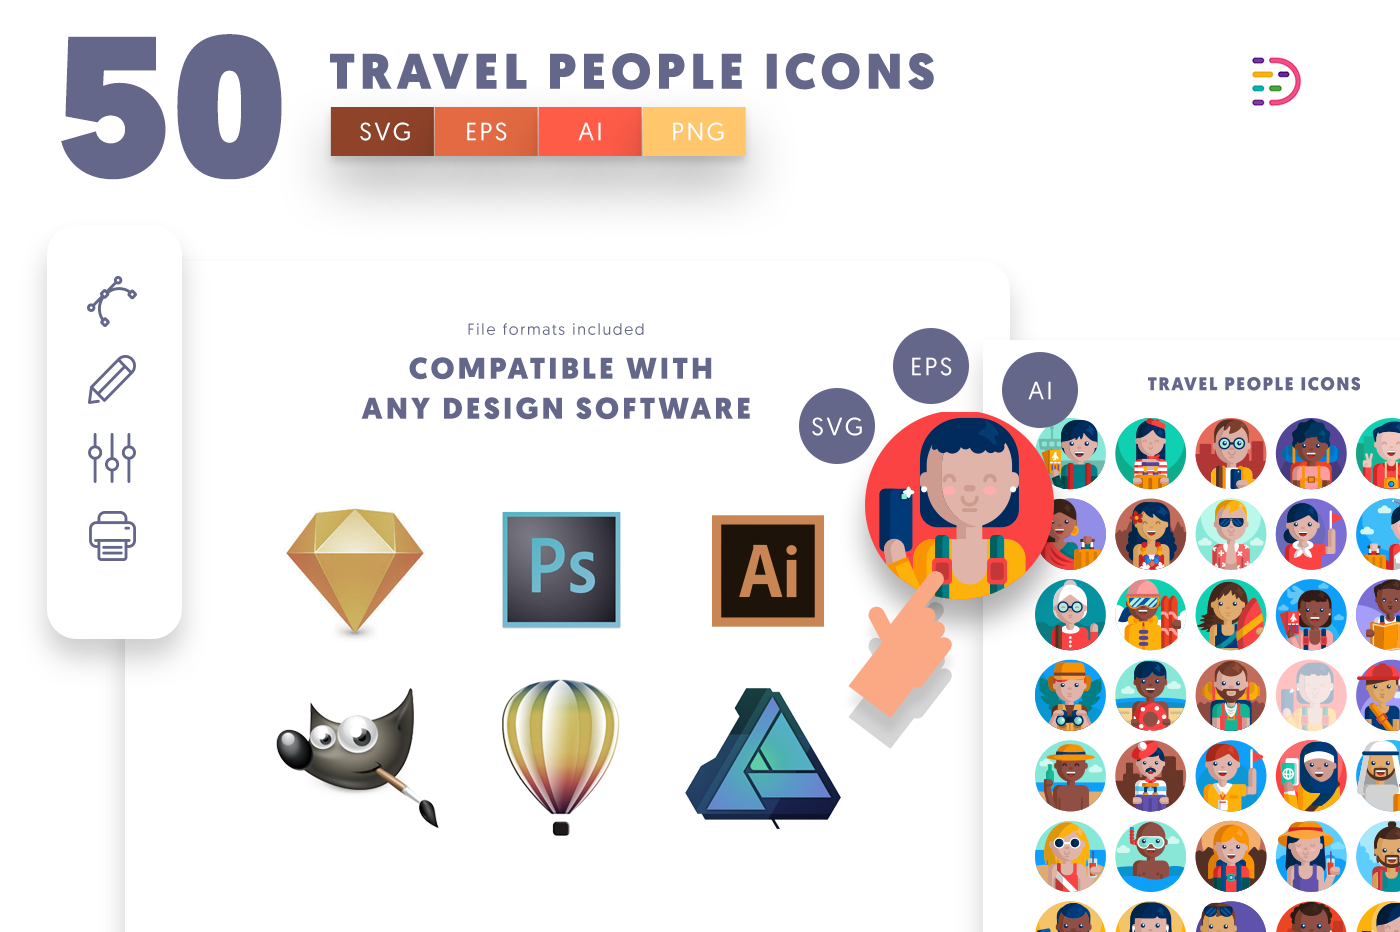 Compatible 50 Travel People Icons pack